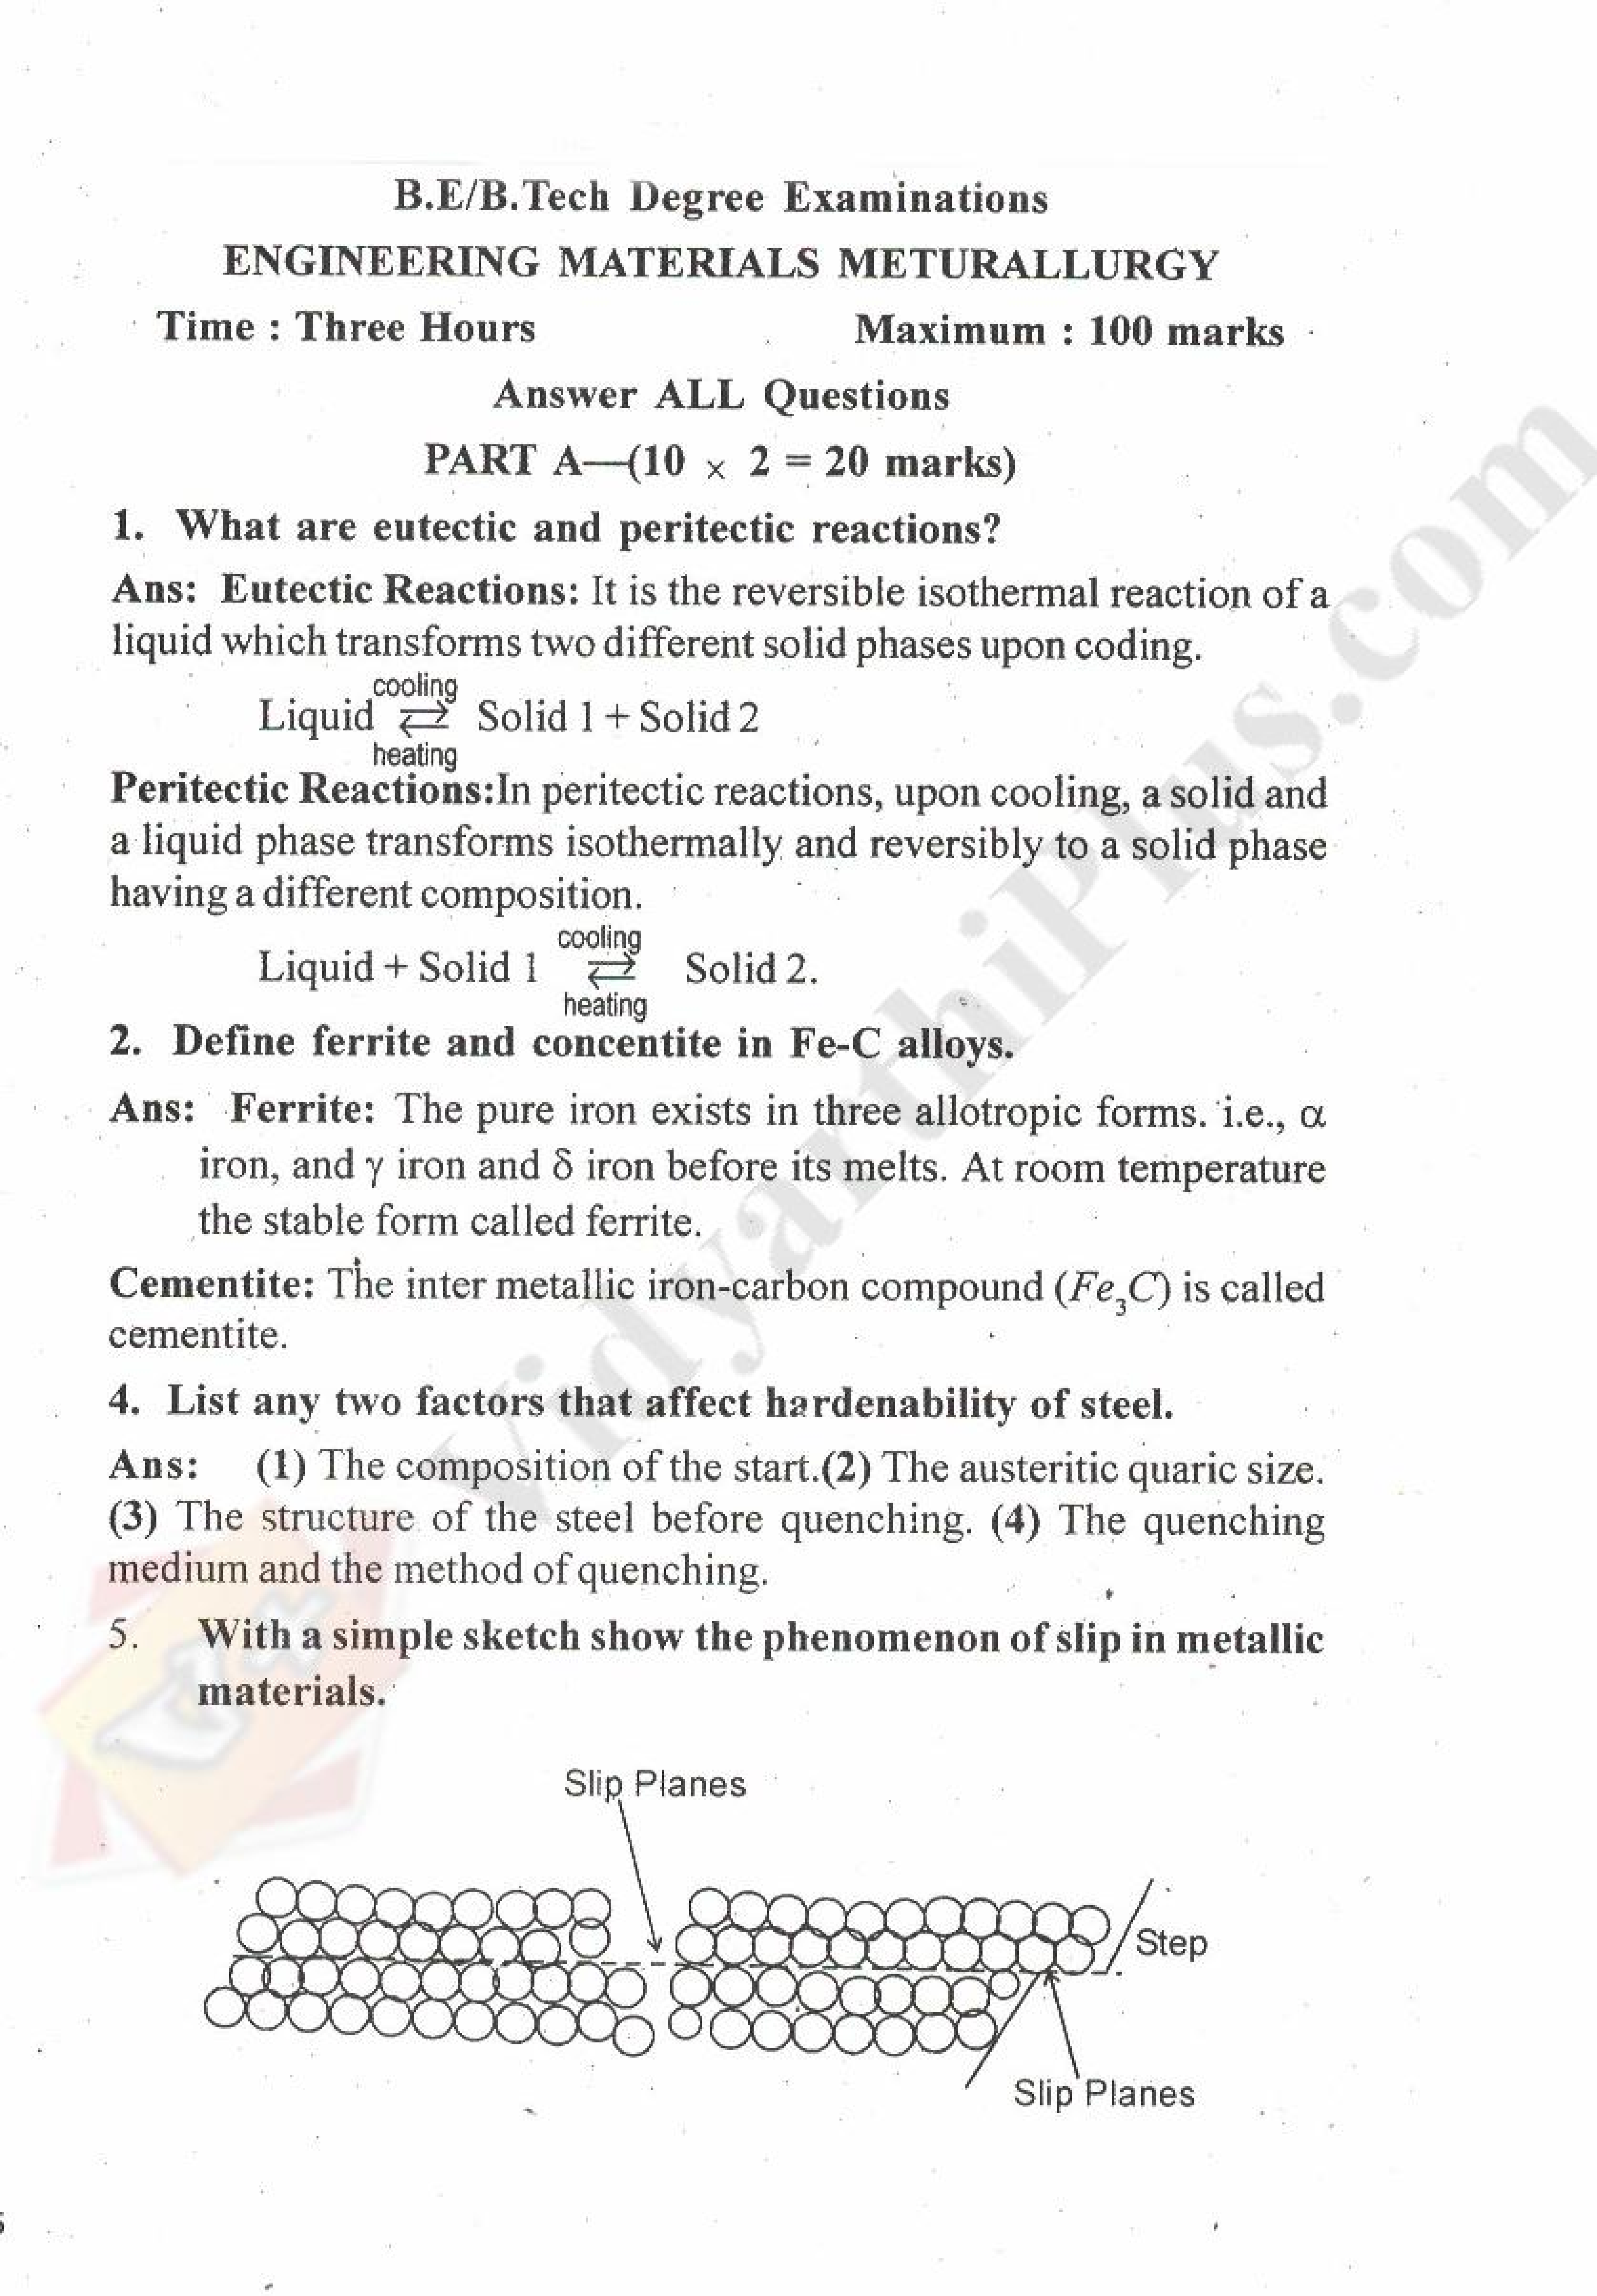 Engineering Materials And Metallurgy Solved Question Paper - 2015 Edition